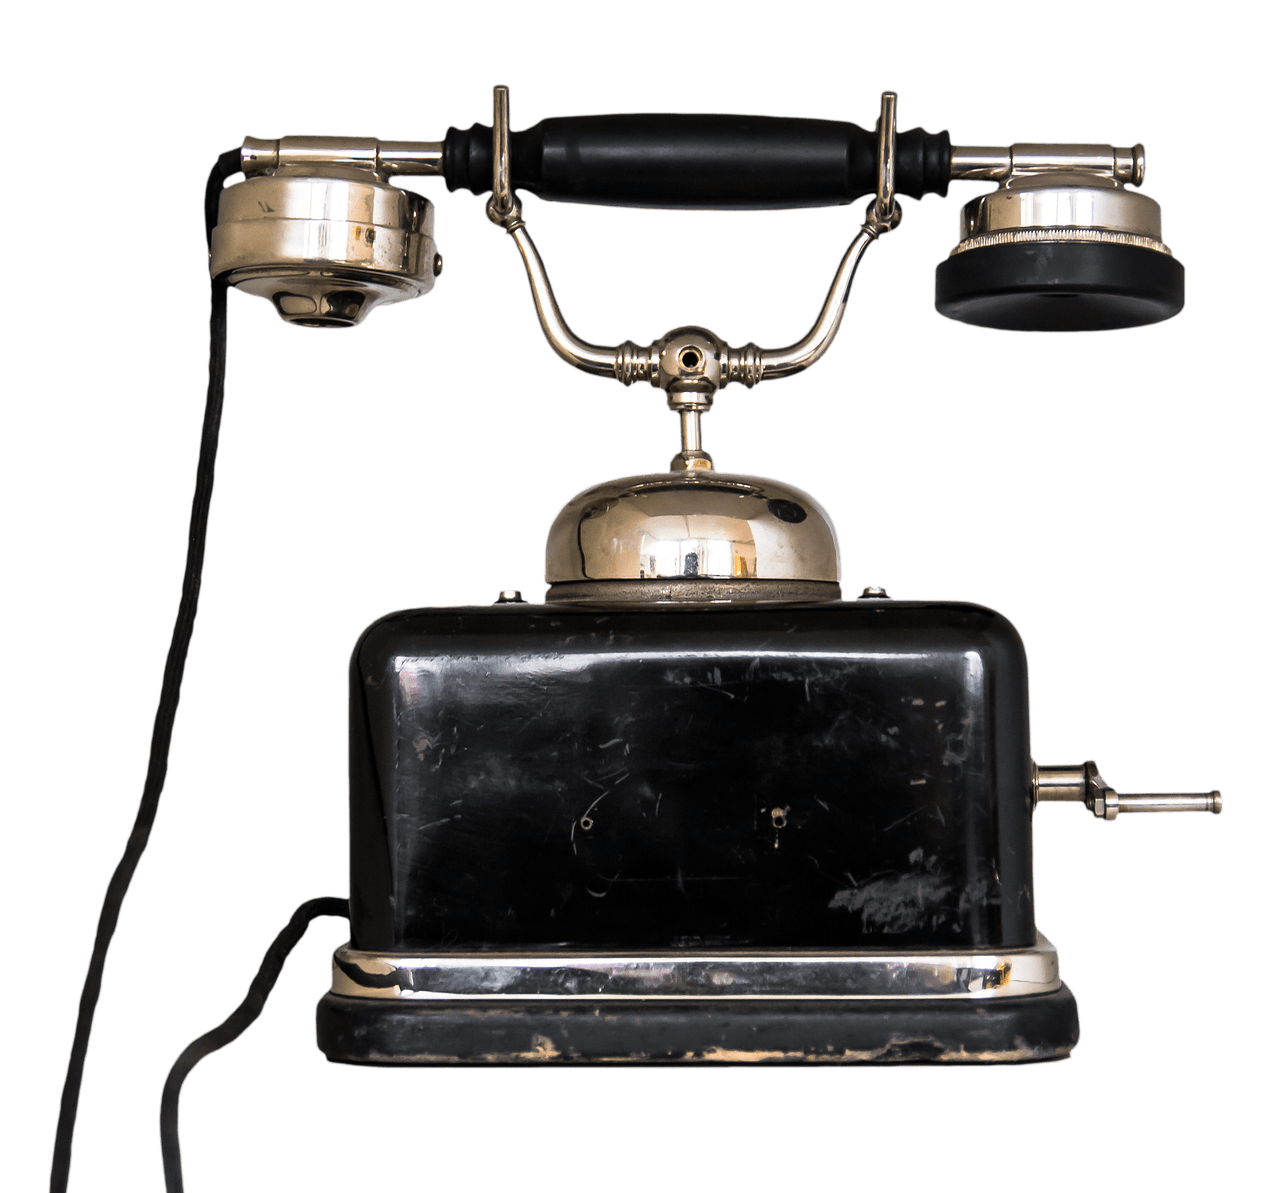 Phone transparent png images. Clipart telephone antique telephone